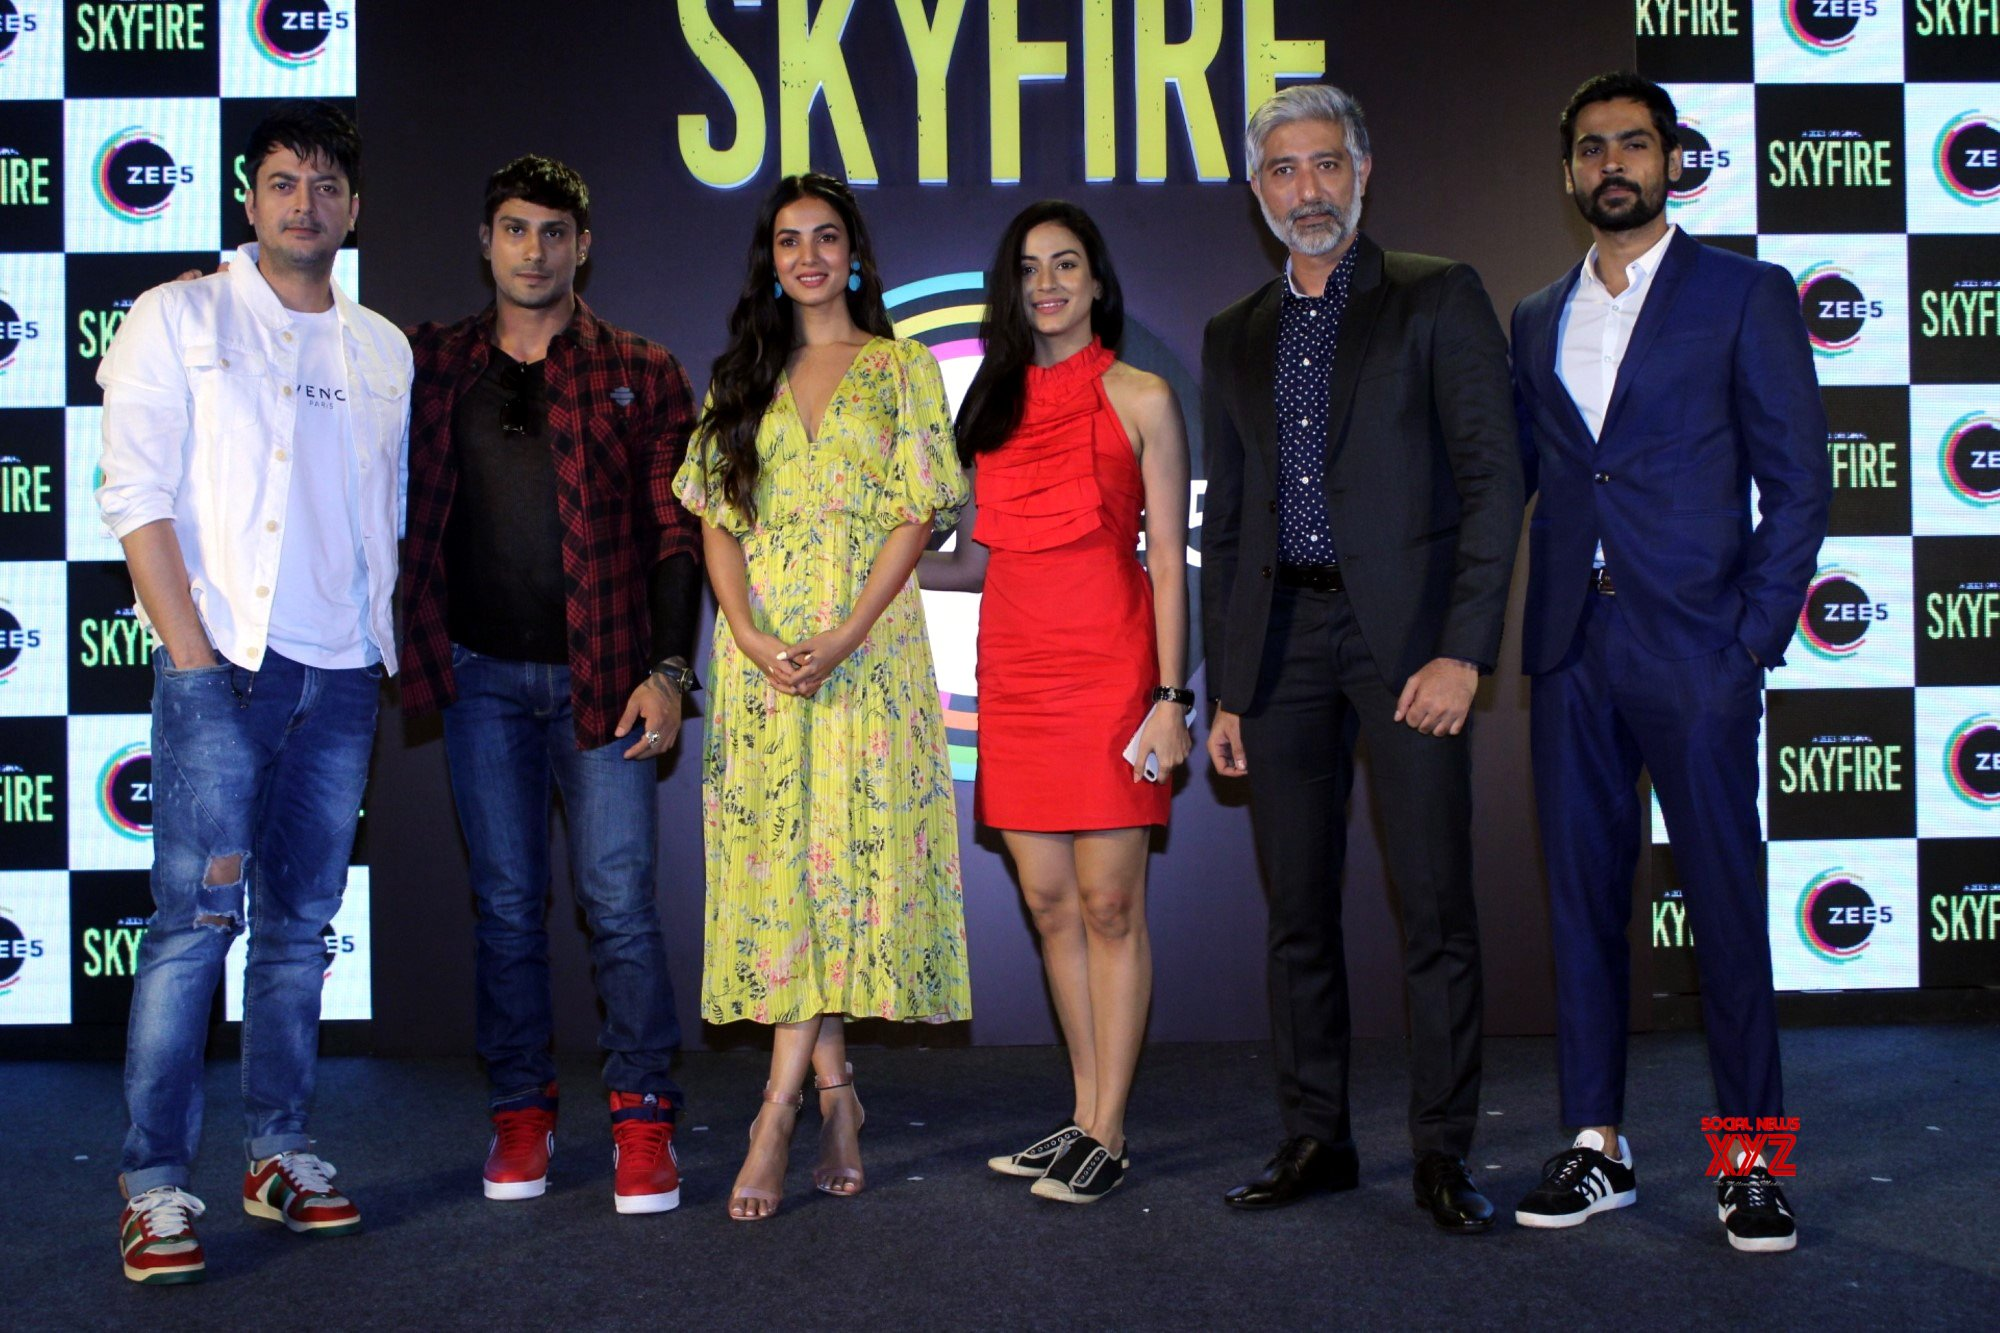 Jatin Goswami to play intelligence agent in 'Skyfire'